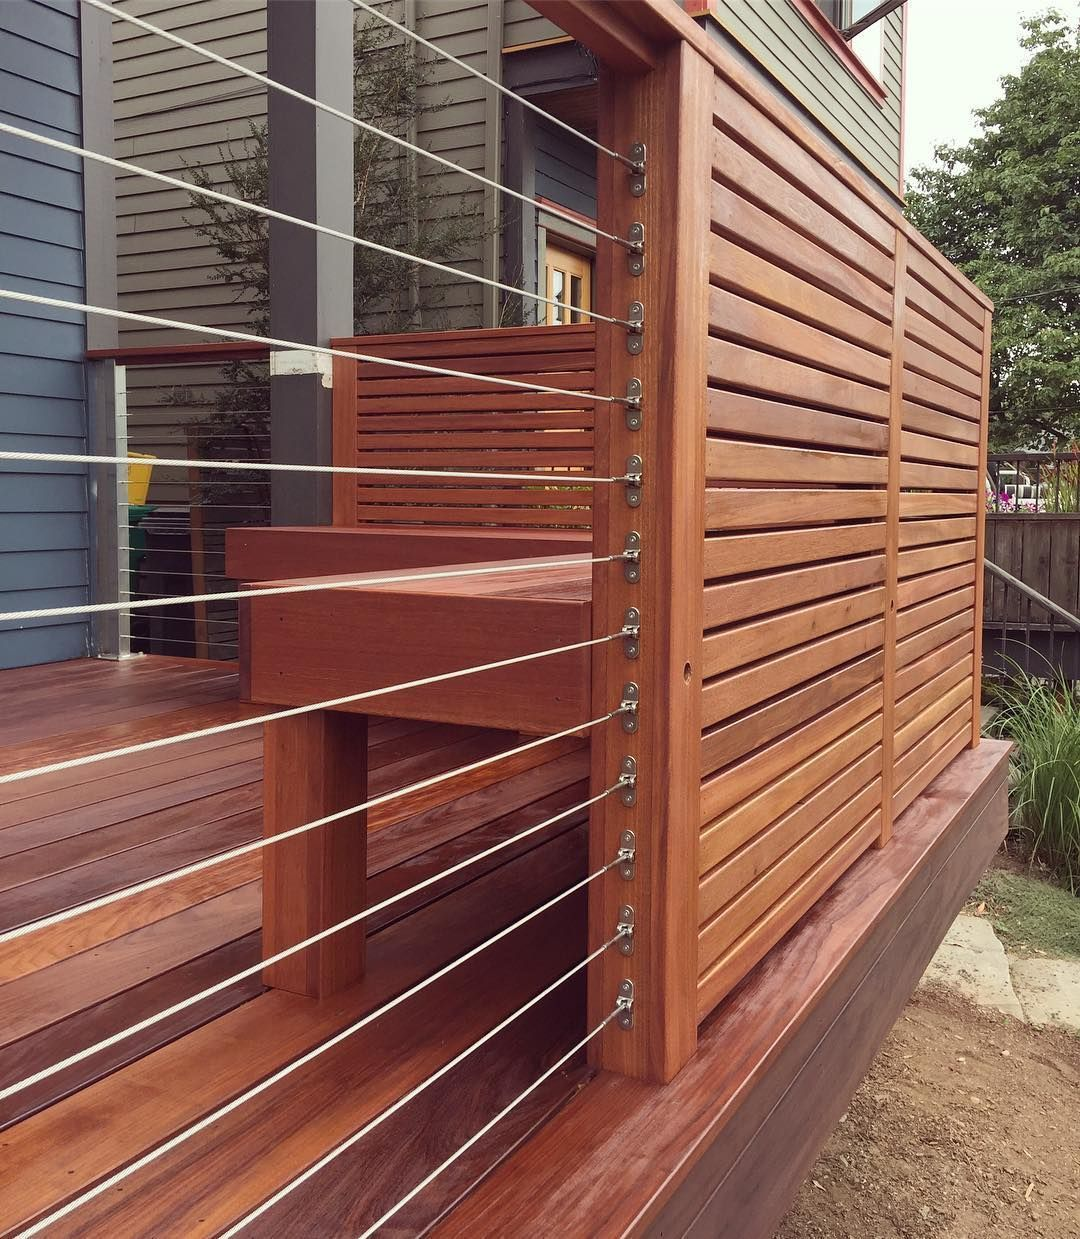 The stainless steel railing cable transitions great into a privacy screen with a bench behind itcedarfence The stainless steel railing cable transitions great into a priv...